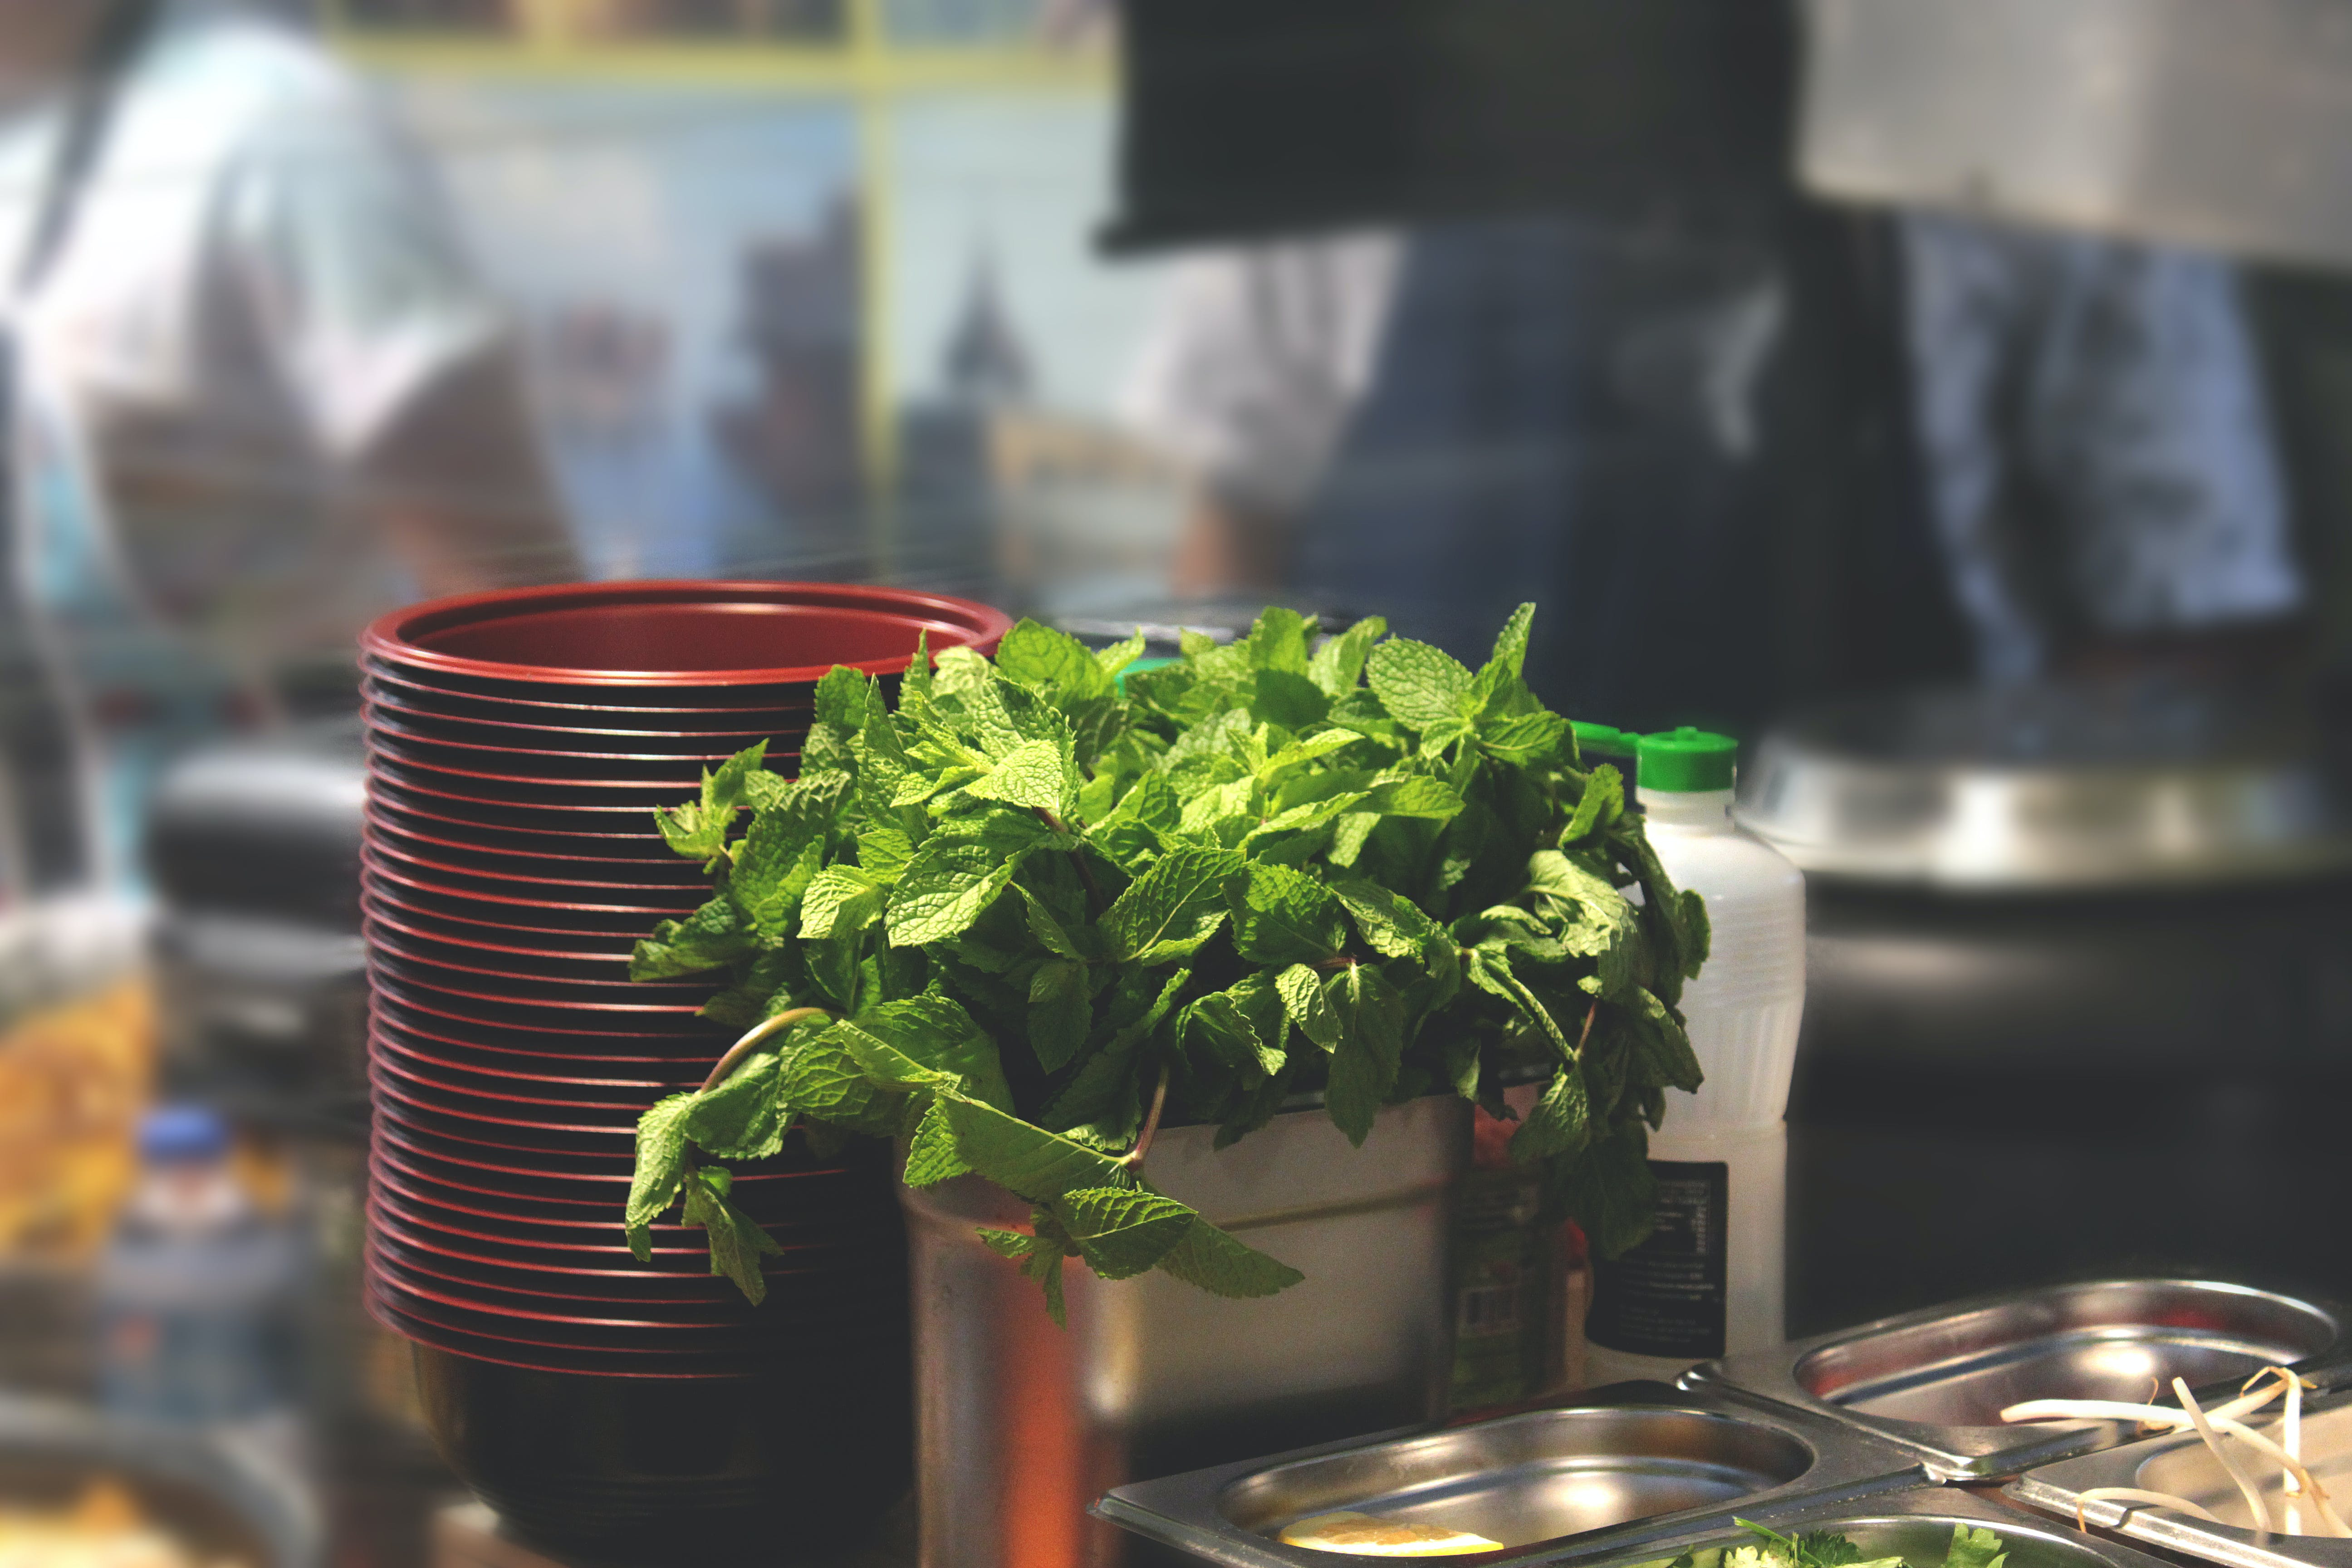 Green Leaf Plant Beside Bowl and Bain-marie